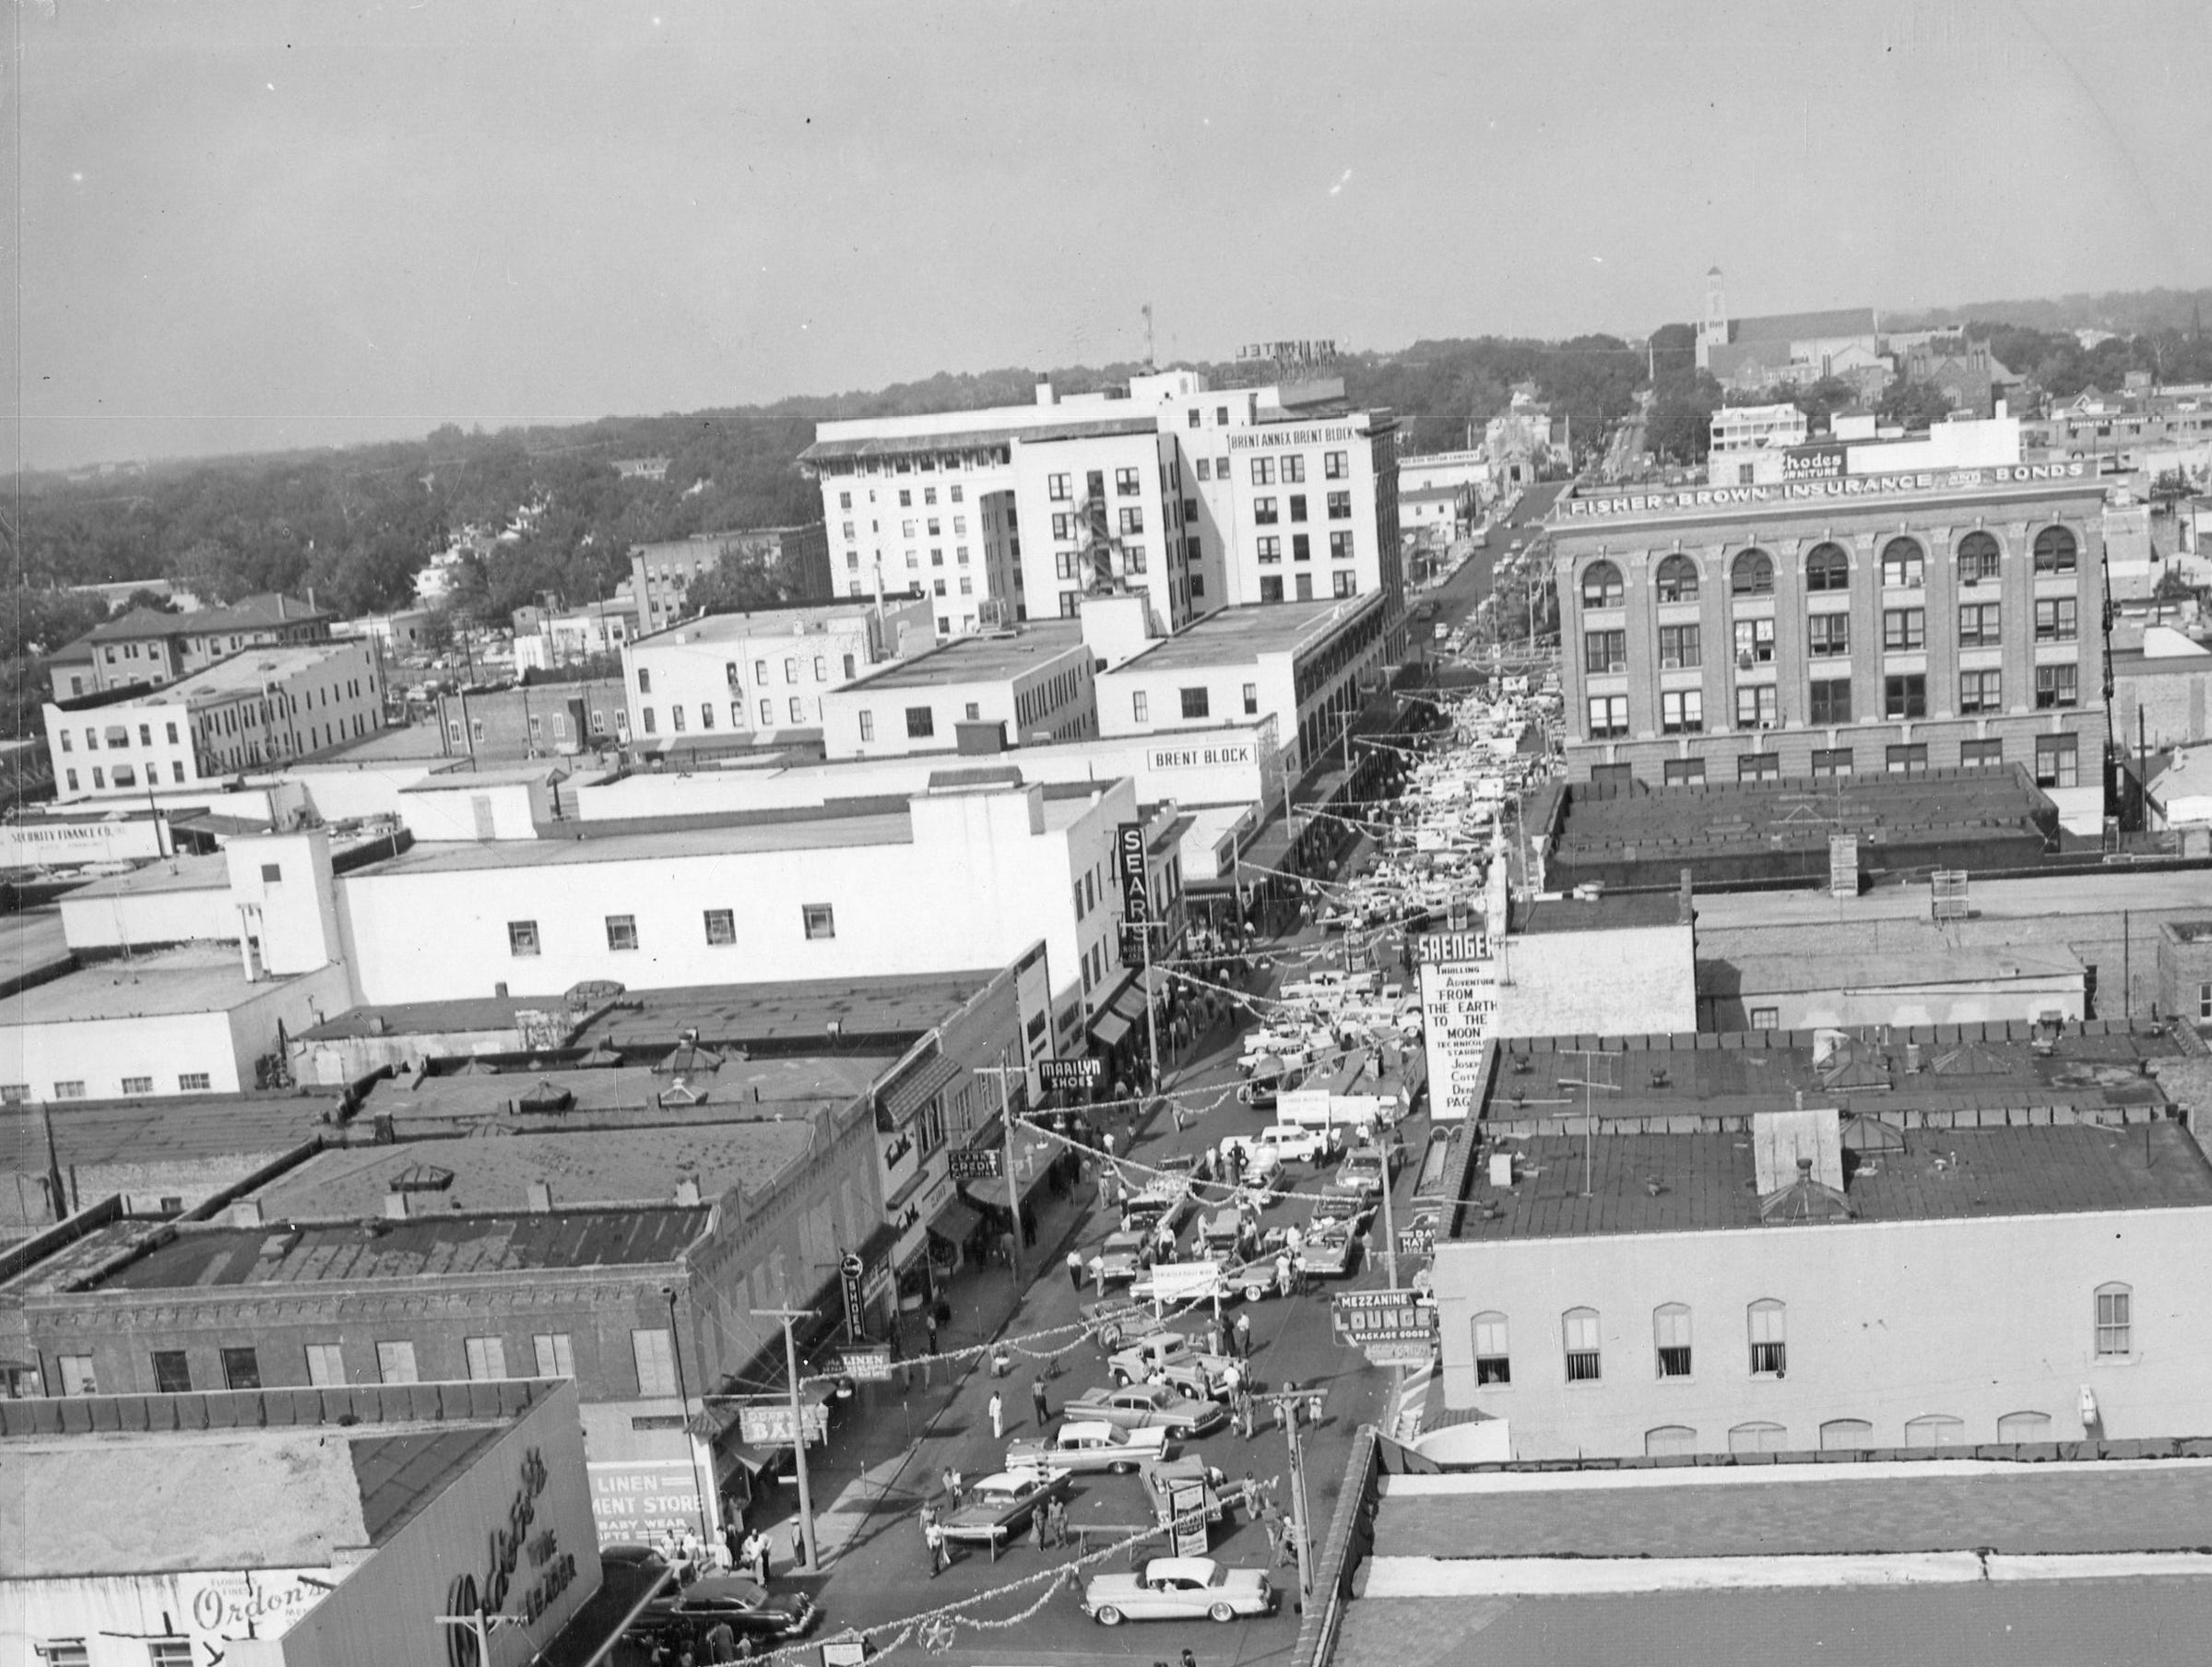 Palafox Street, south view. Date unknown.